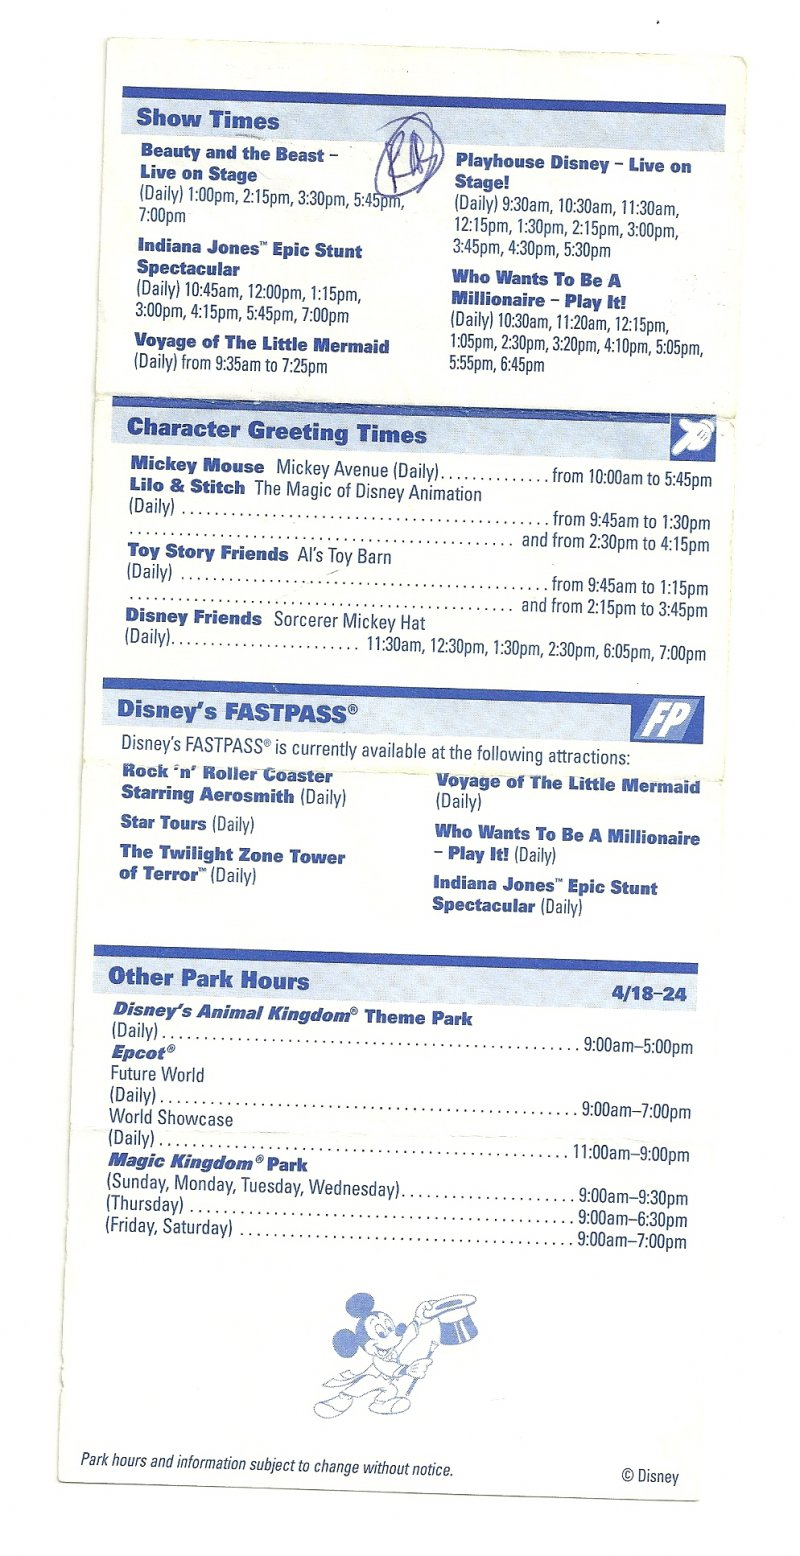 Image 1 of 2004 walt disney world Disney MGM Studios Times guide Flyer April 18-24